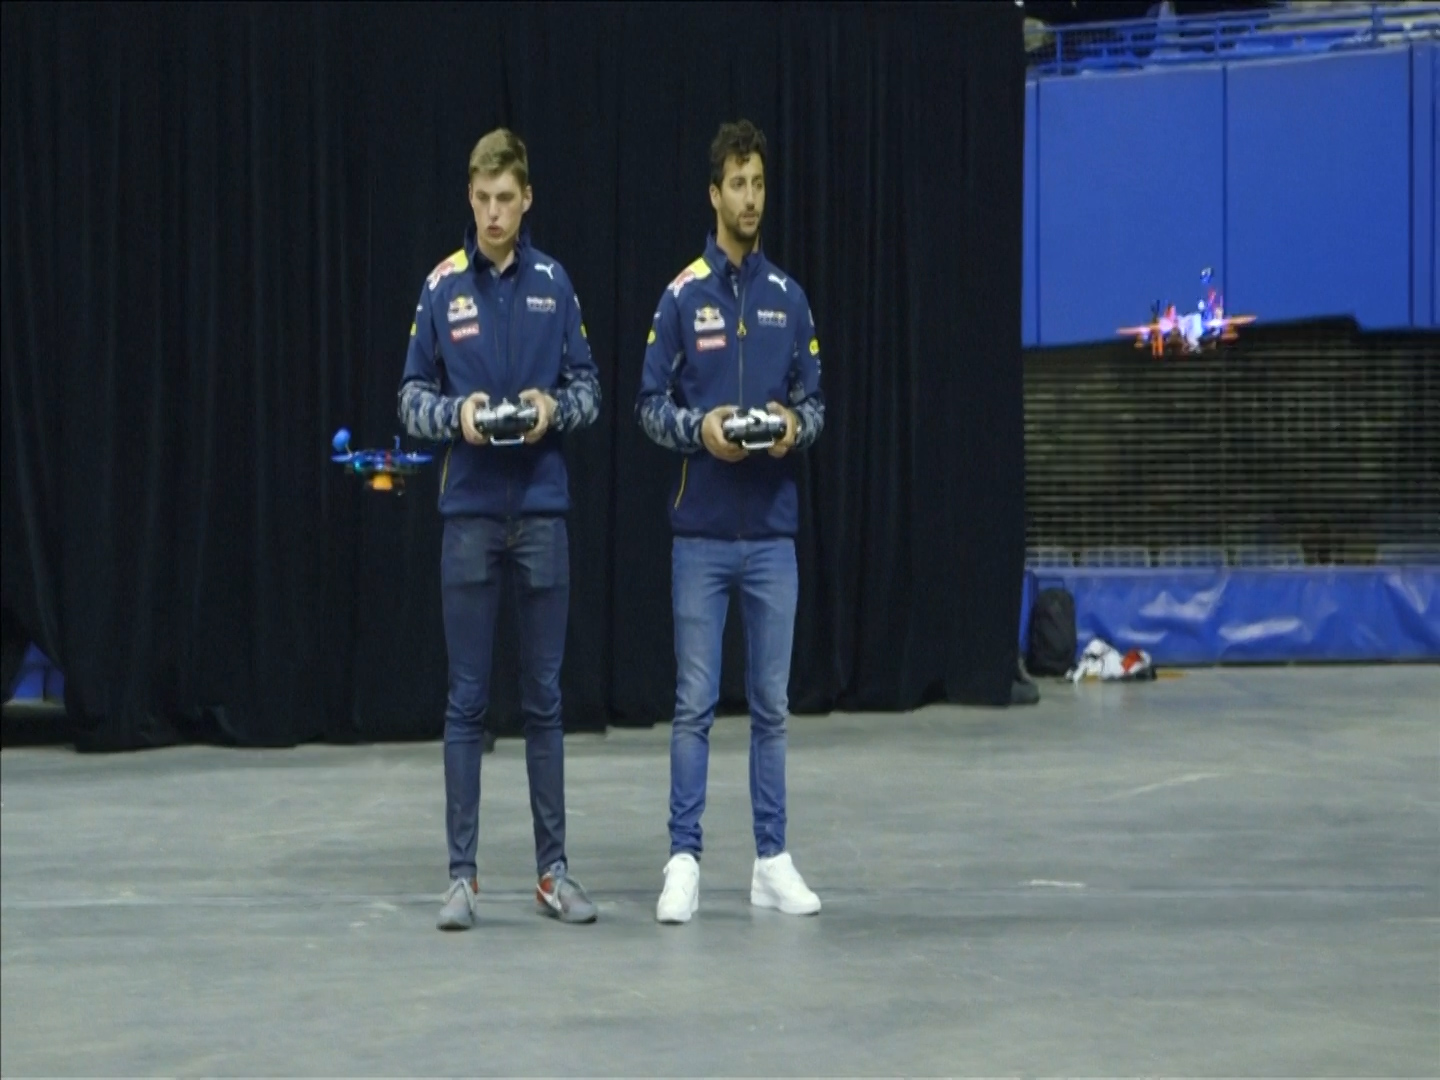 Red Bull drivers drone race